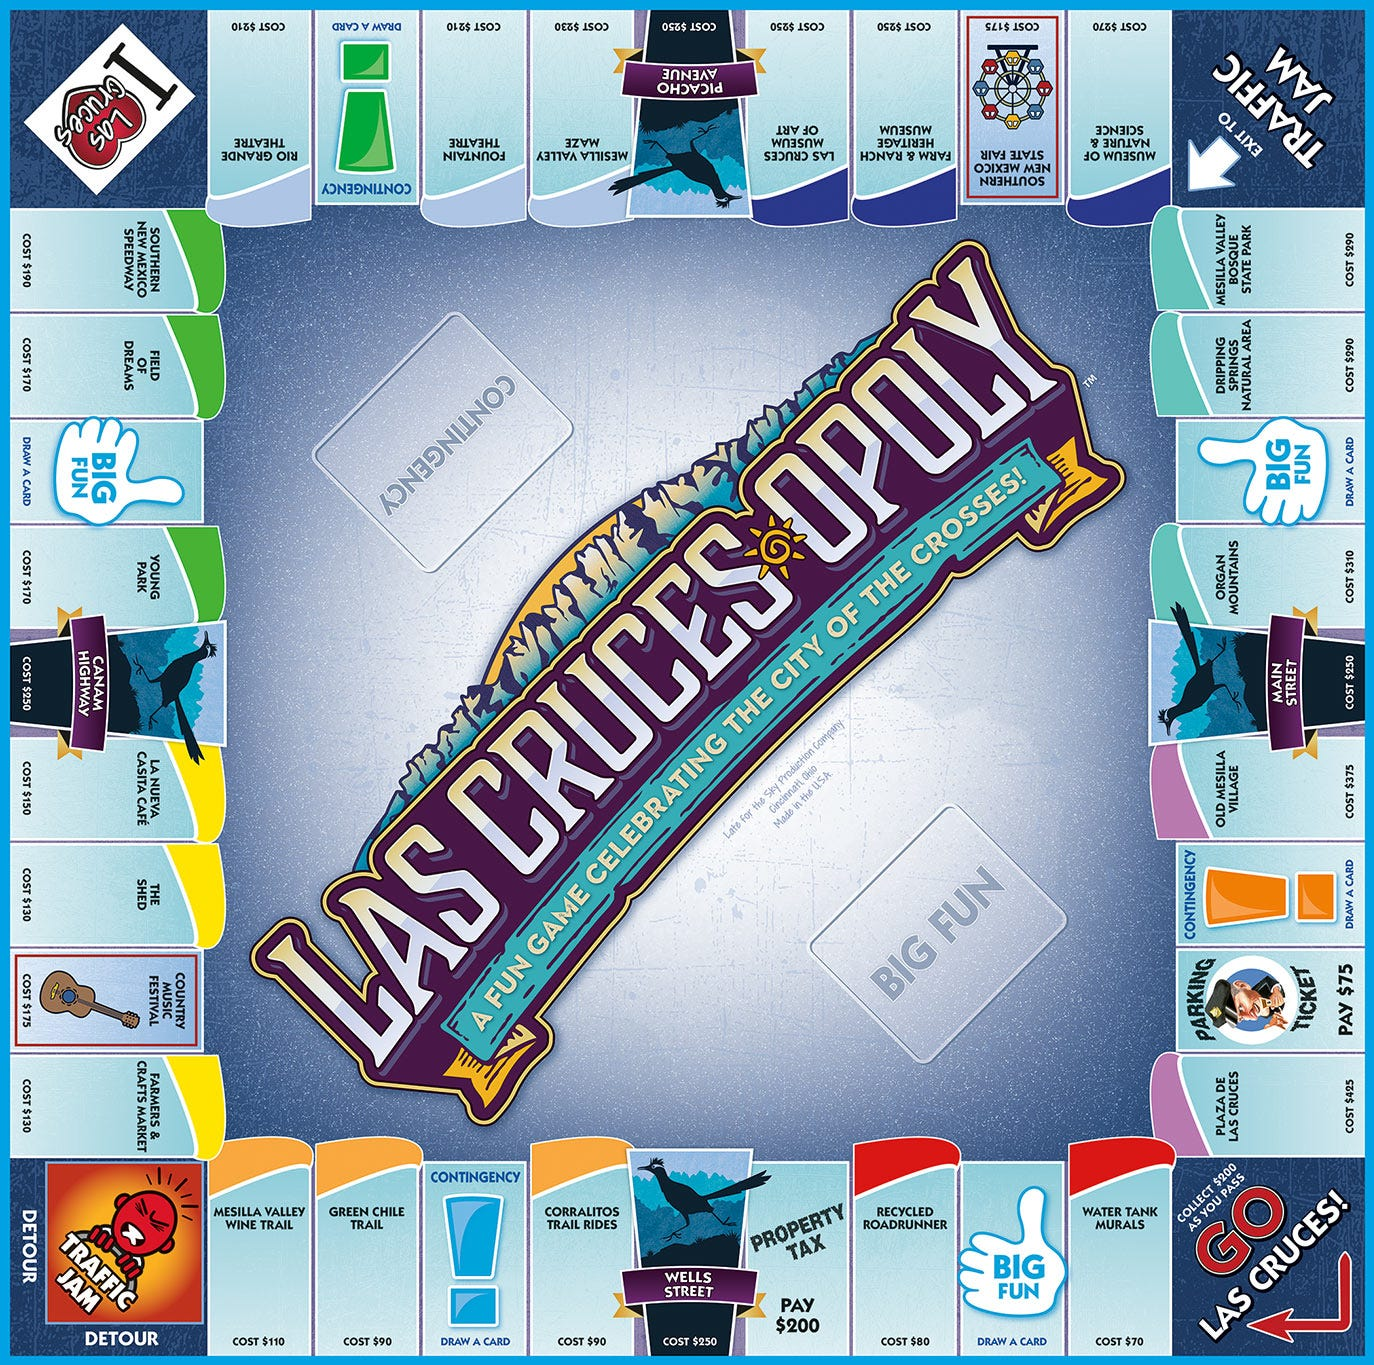 Las Cruces-opoly: The city board game is a success at Walmart